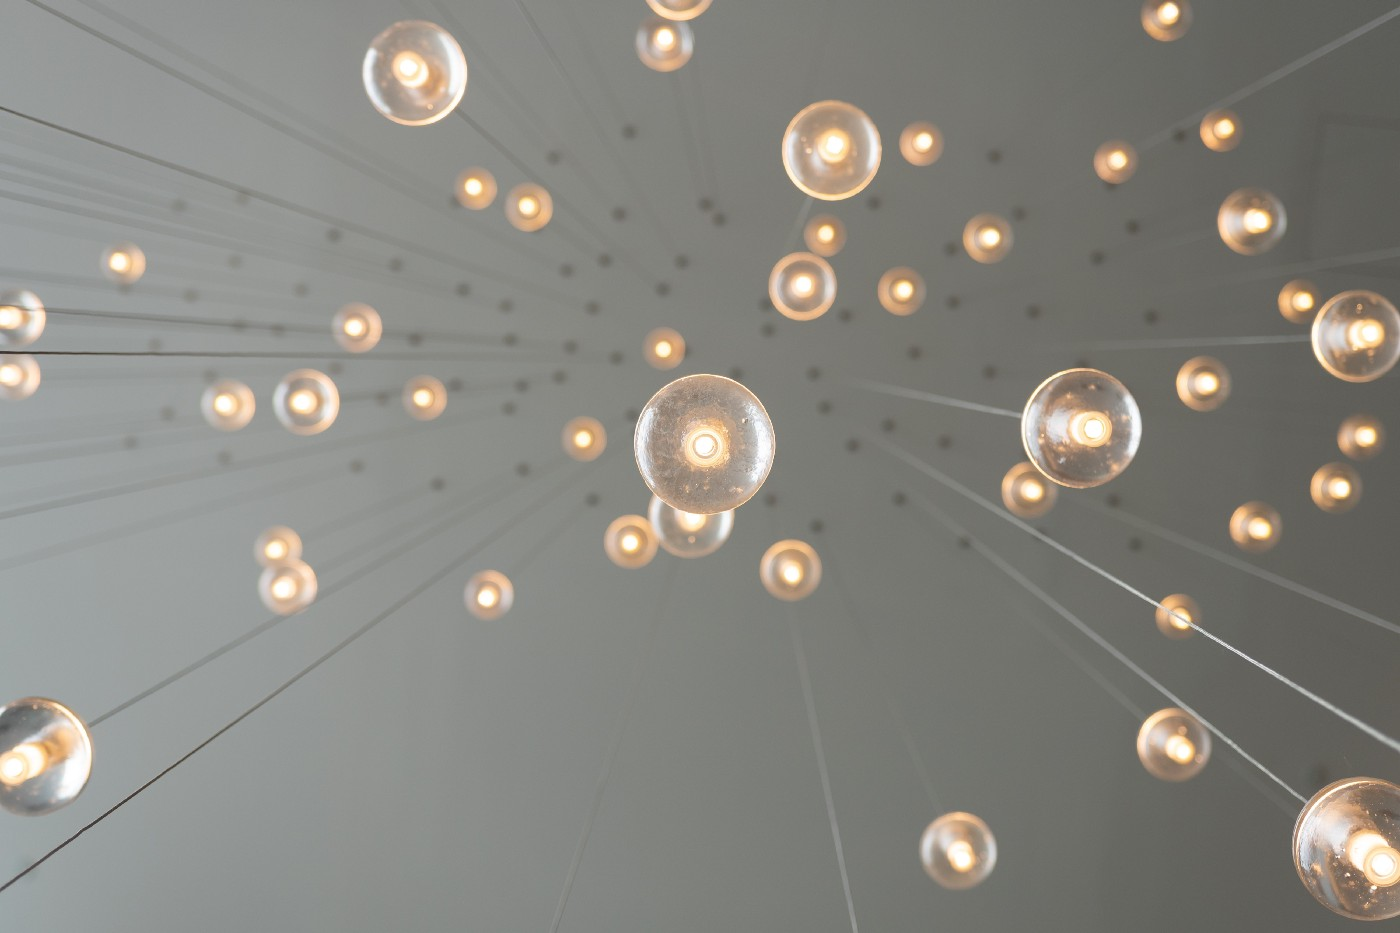 Photo of small light fixtures hanging from long wires as viewed from below.